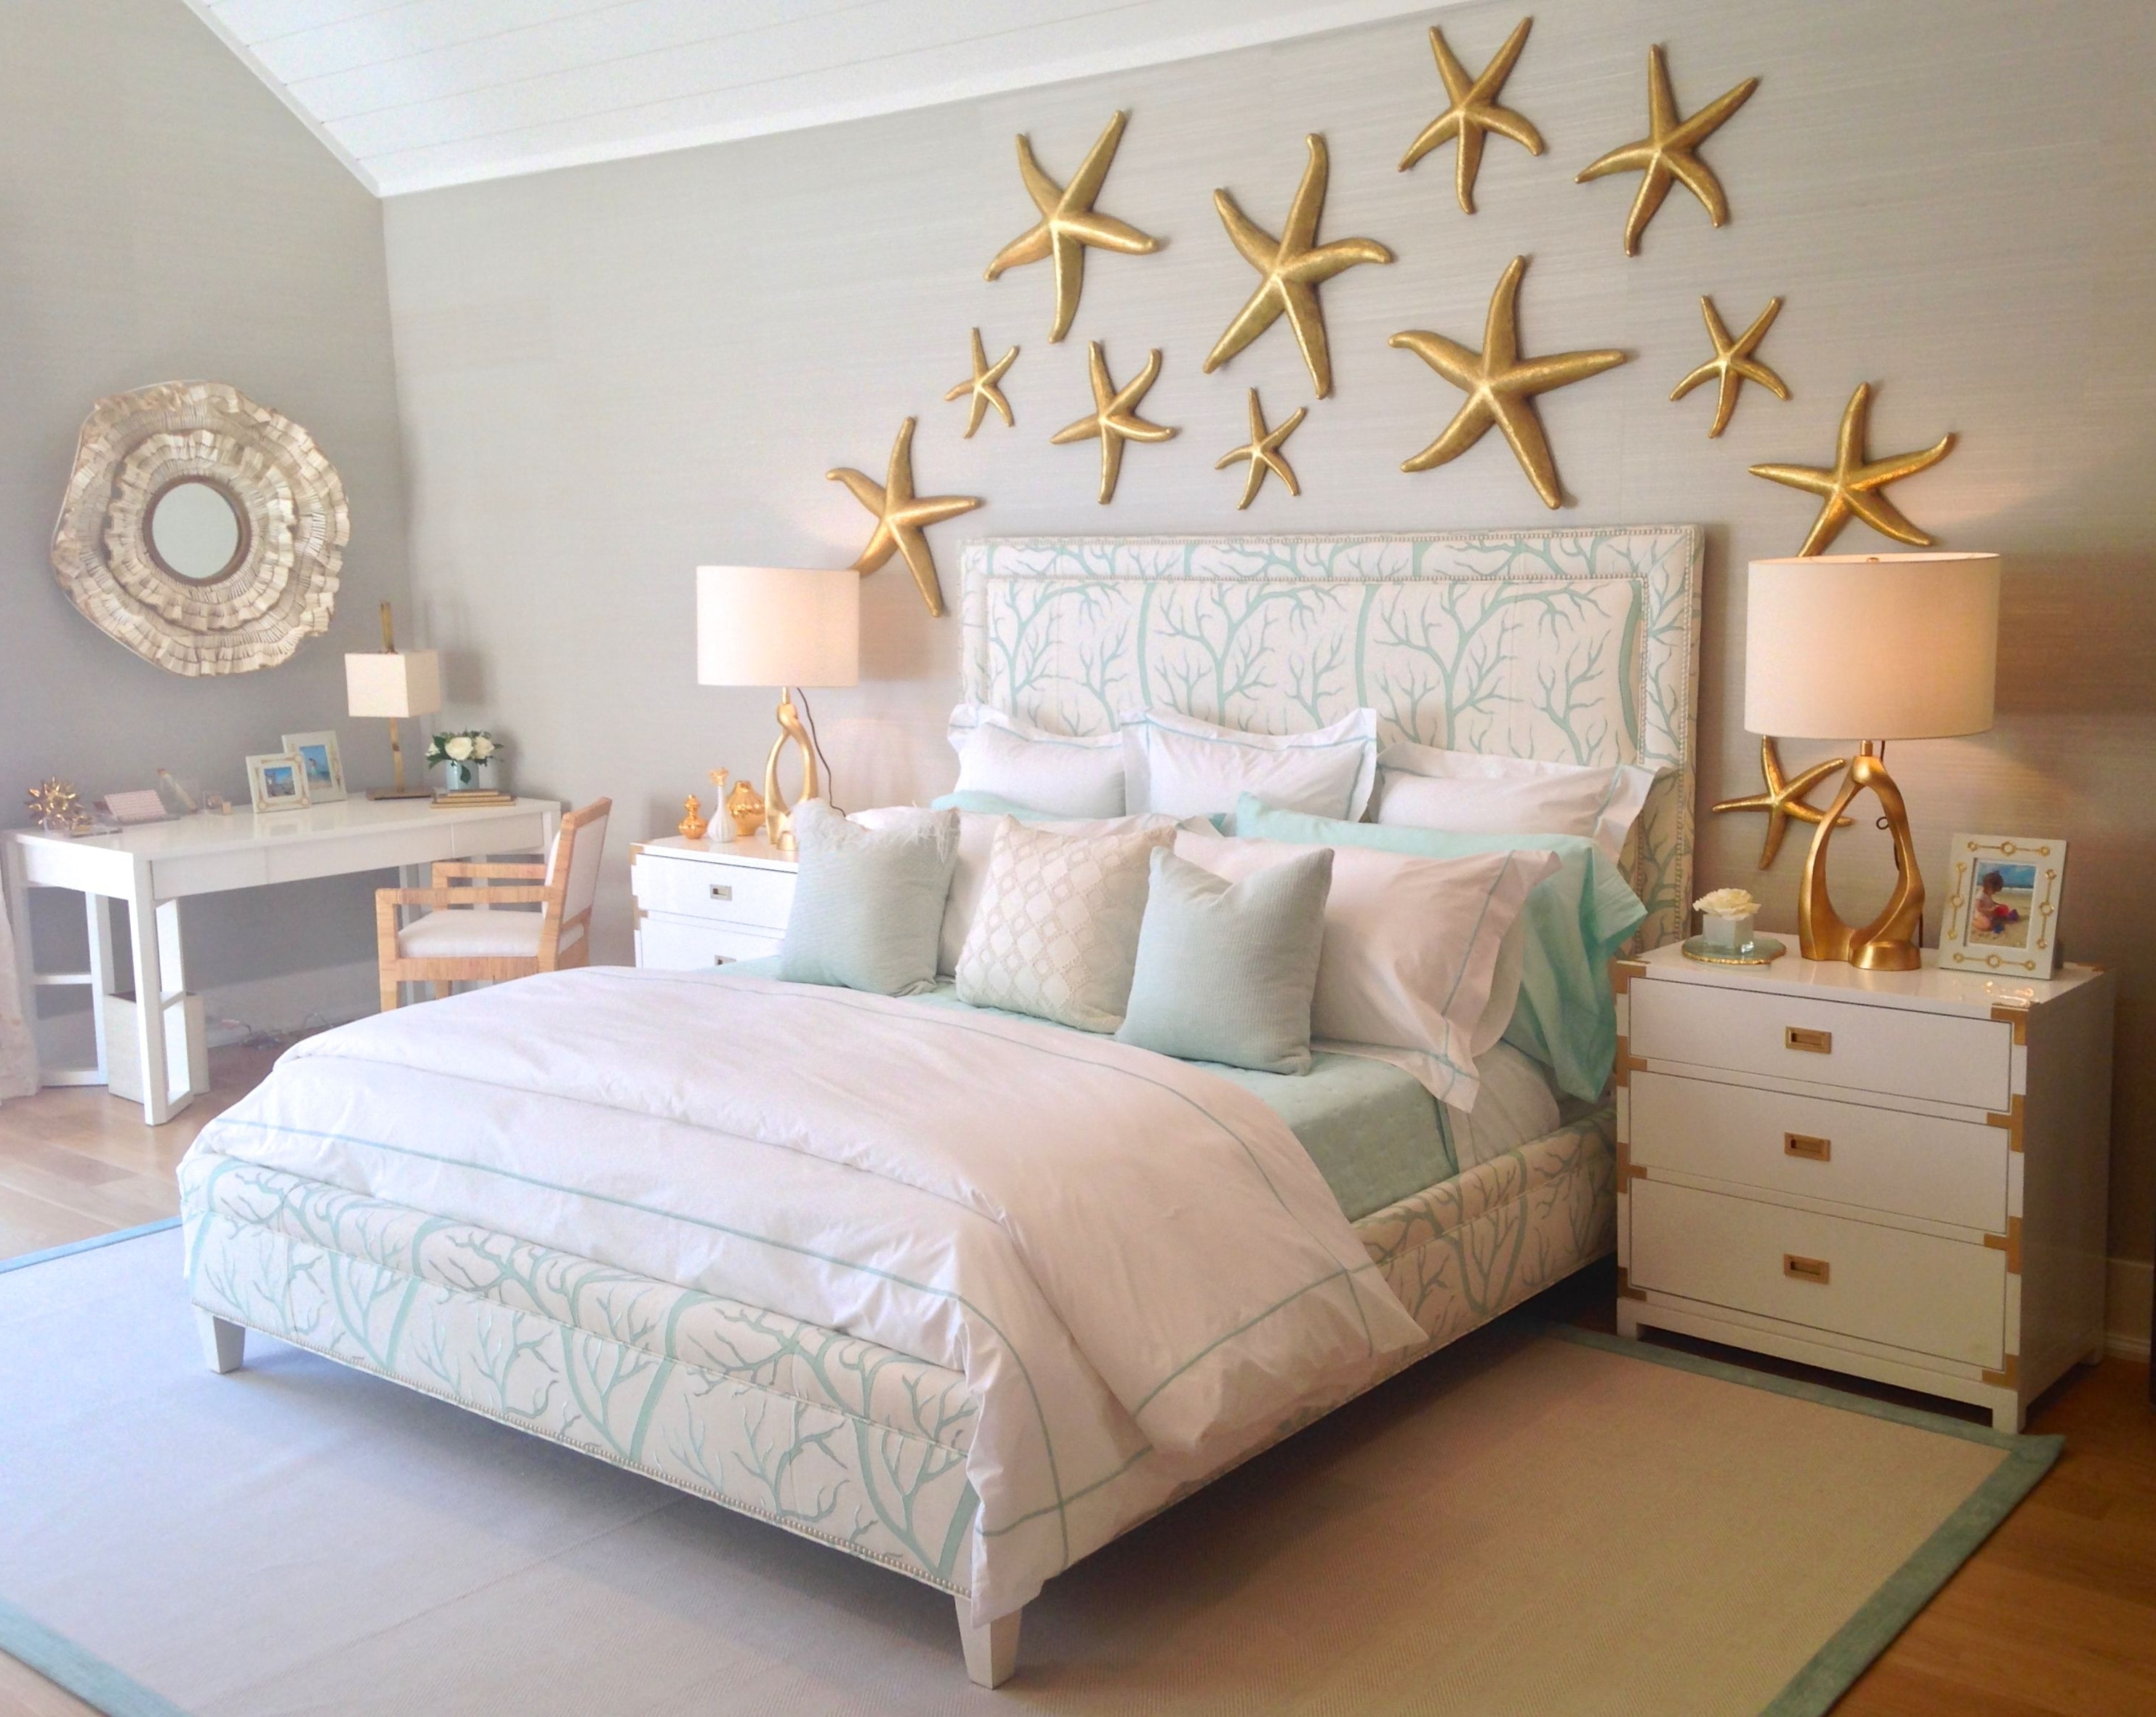 Coral Print Regarding Beach Wall Art For Bedroom (View 13 of 15)